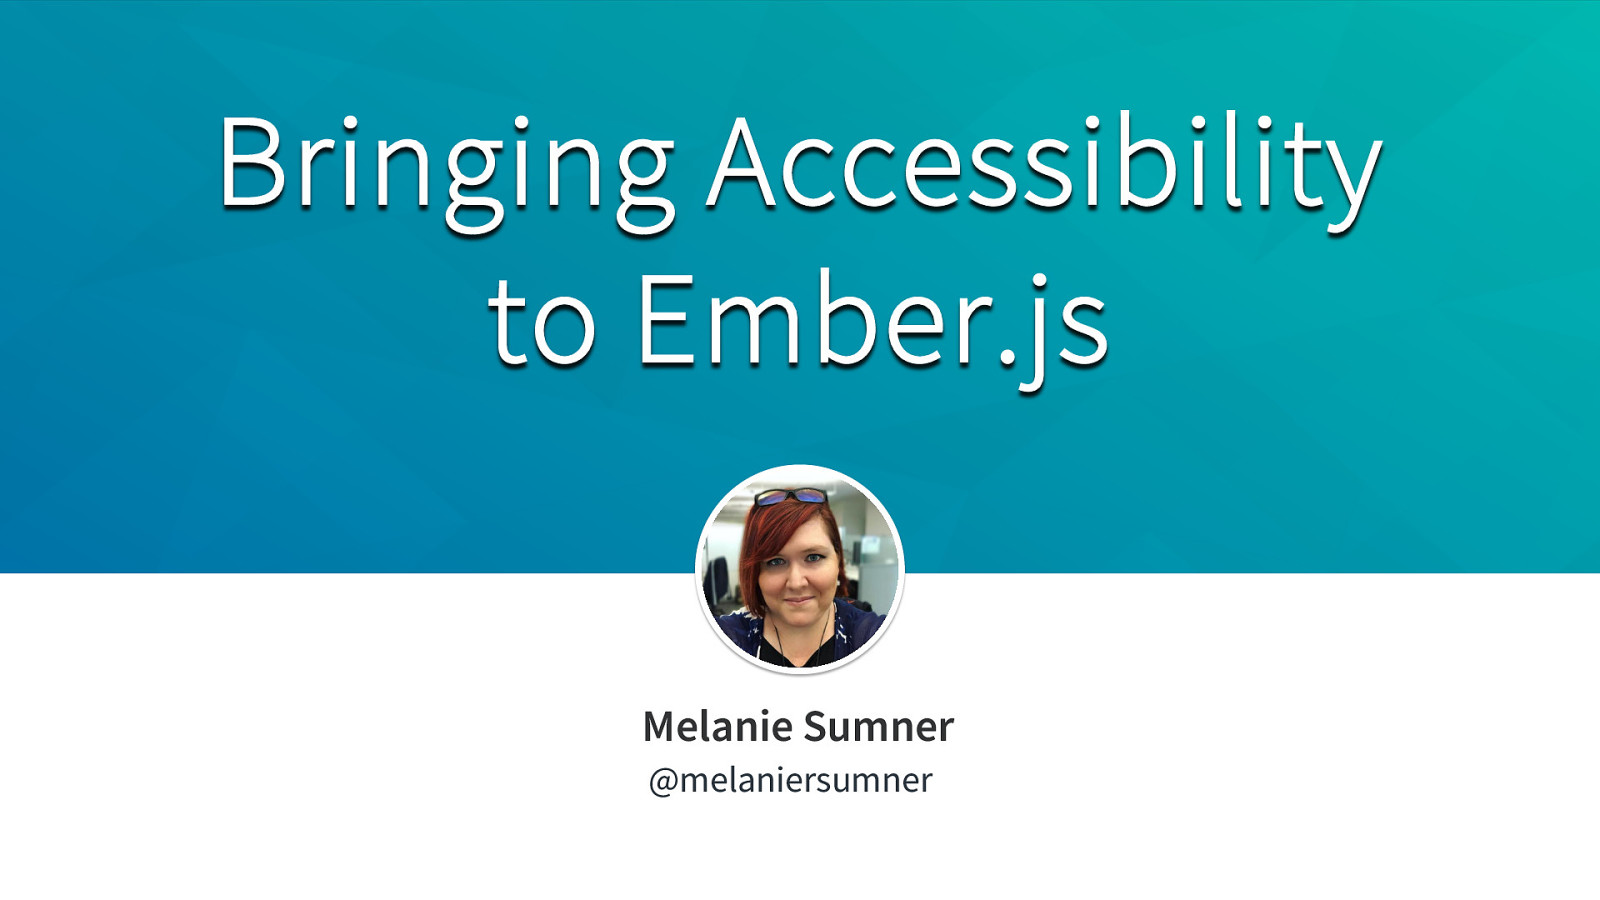 Bringing Accessibility to the Ember.js Framework